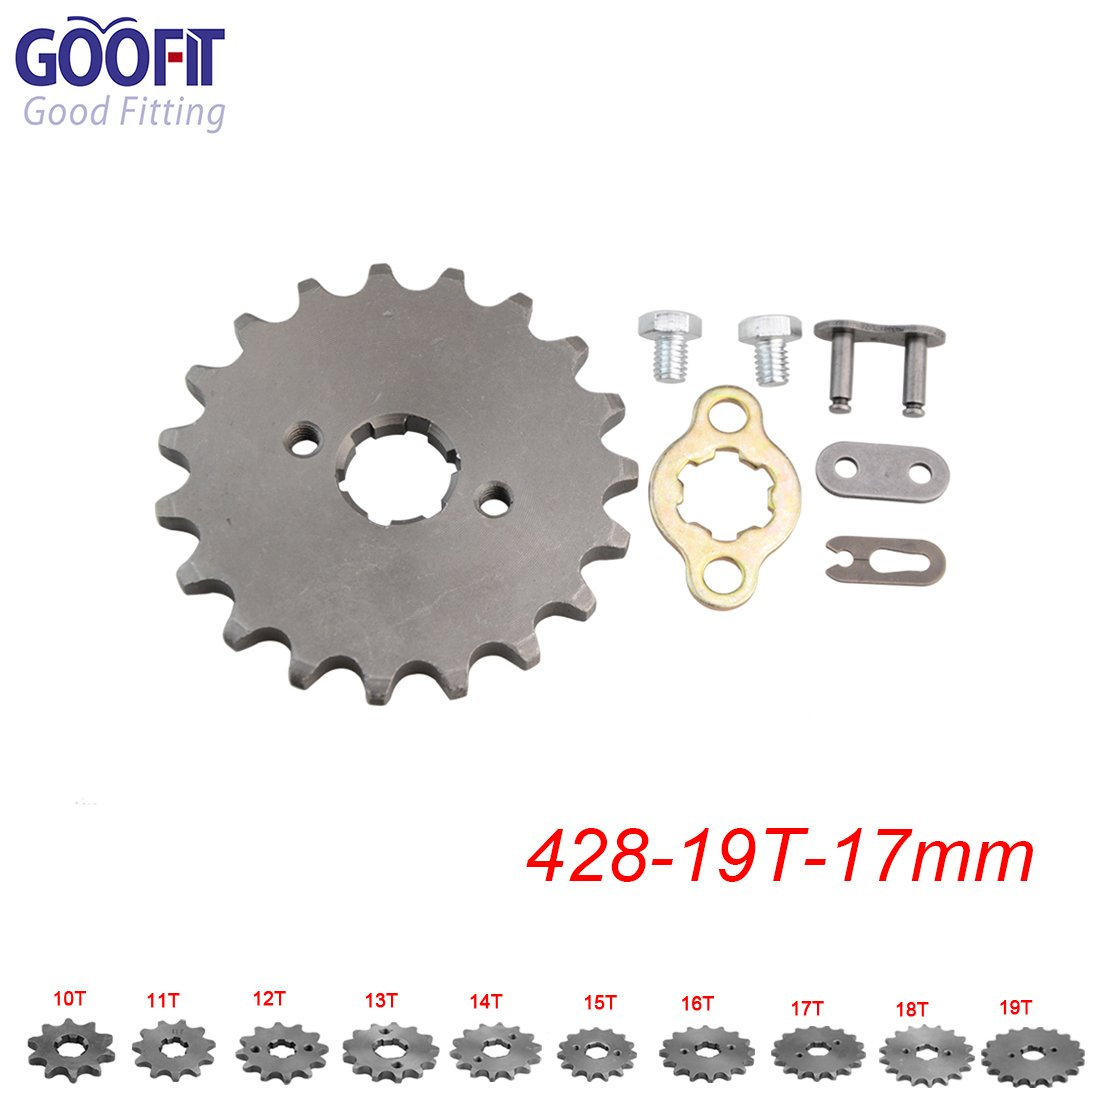 GOOFIT 420 13 17mm Tooth Front Engine motorcycle Sprocket Chain Retainer Plate LockerEngine For 50cc 70cc 90cc 110cc Motorcycle Dirt Bike ATV Quad